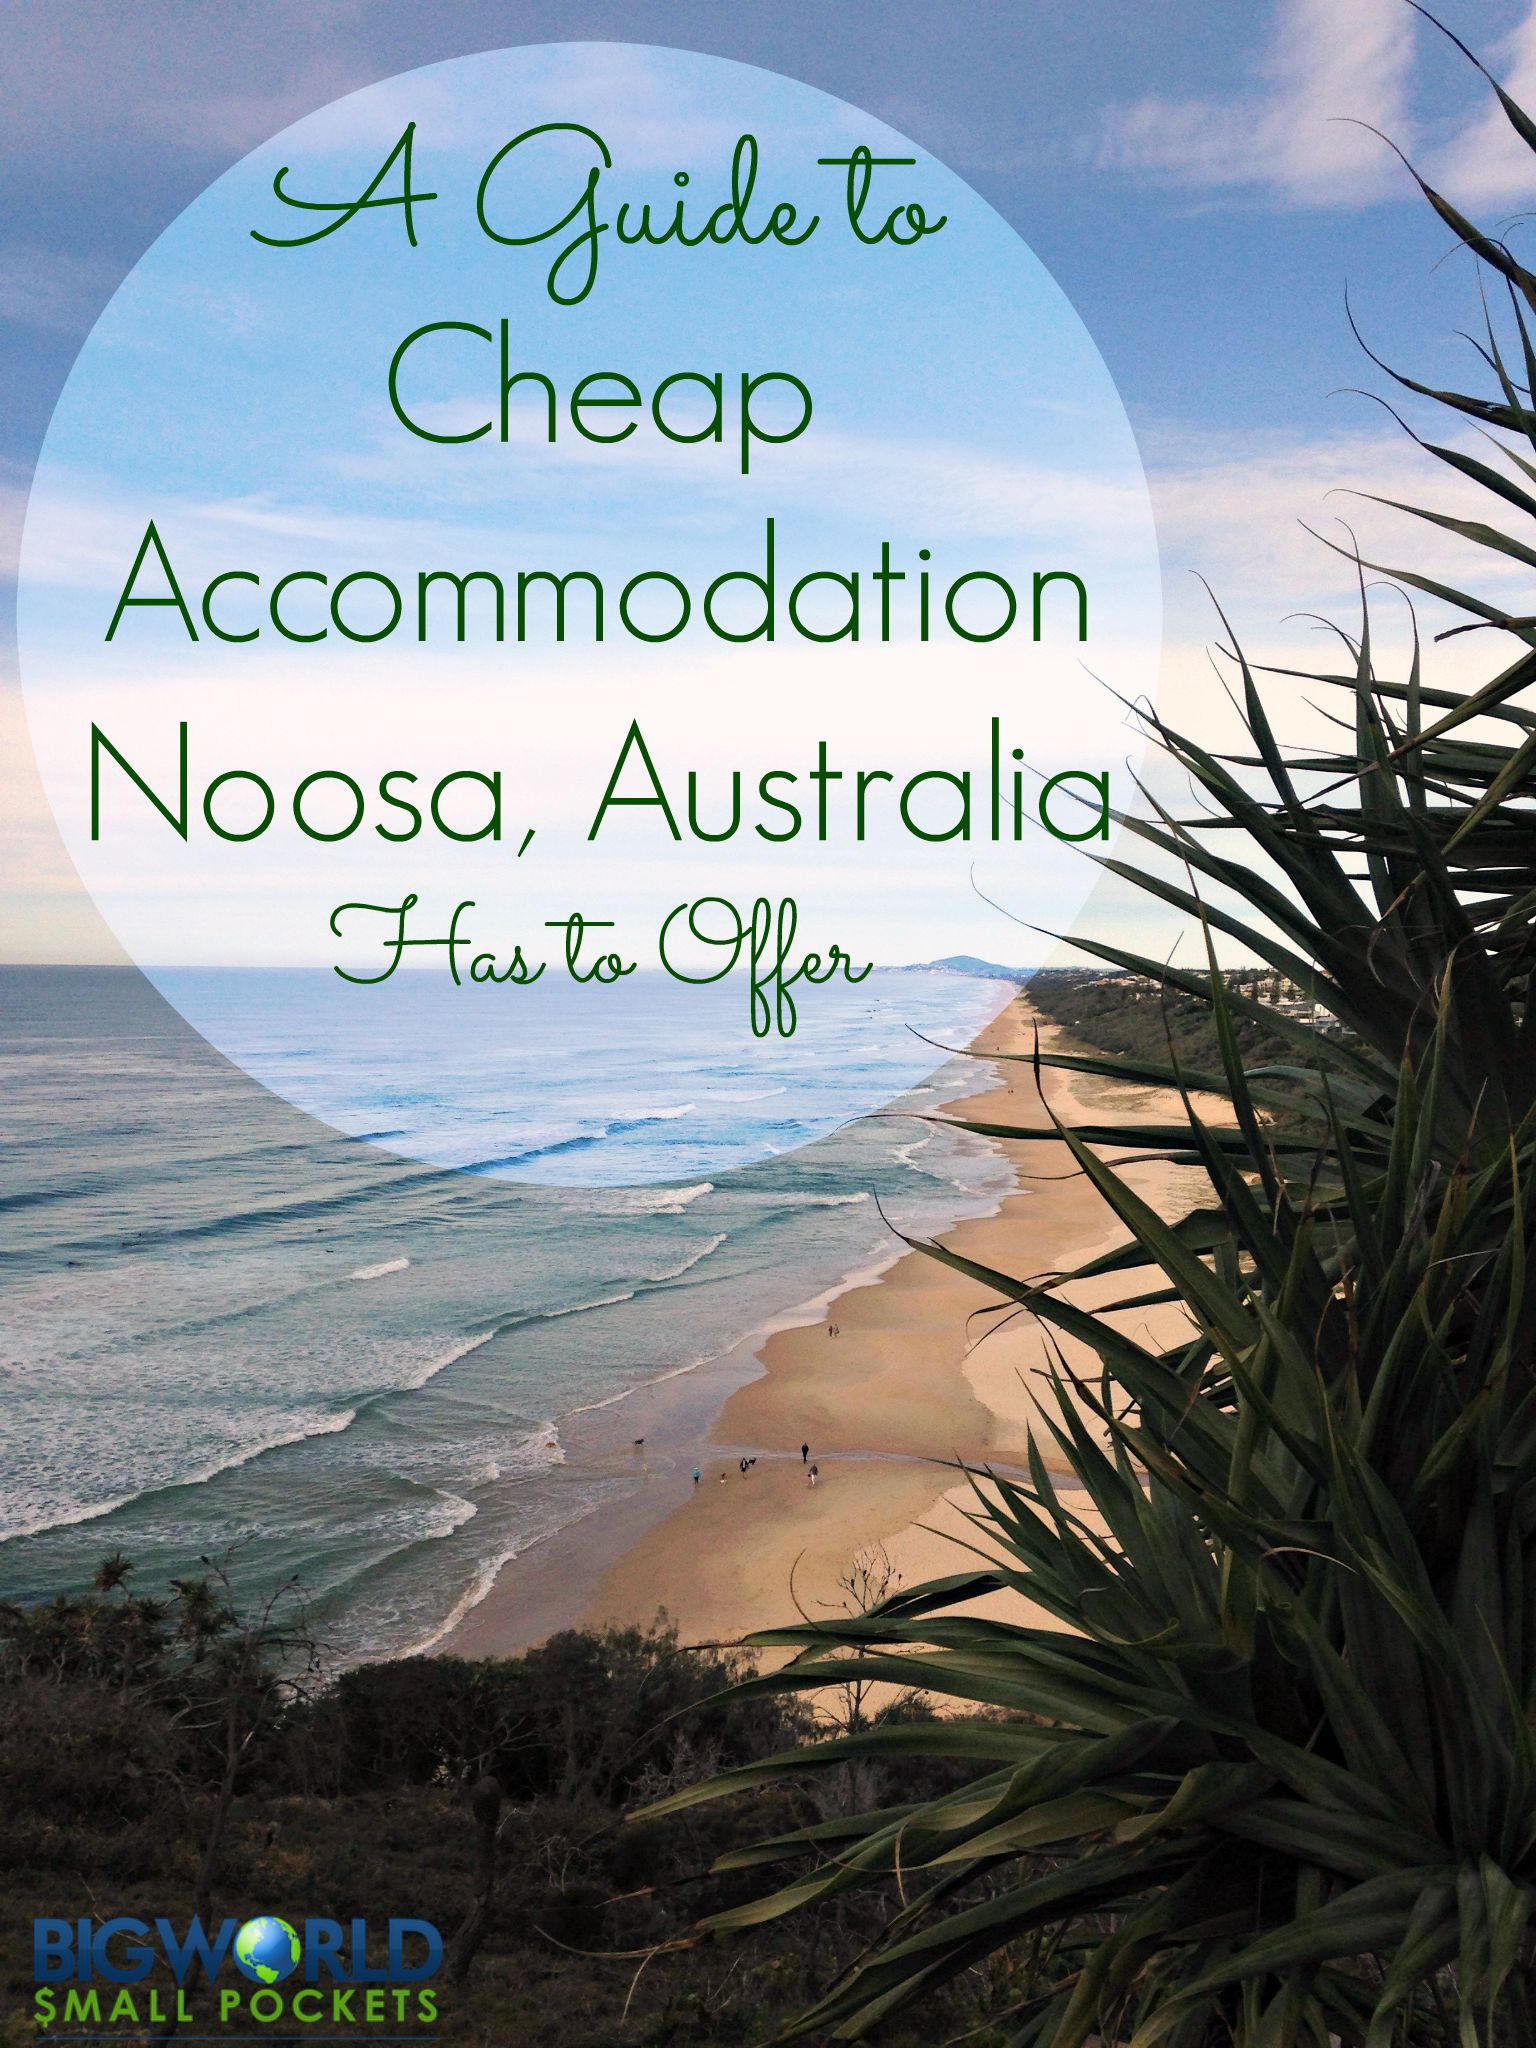 A Guide to the Cheap Accommodation Noosa Has to Offer {Big World Small Pockets}